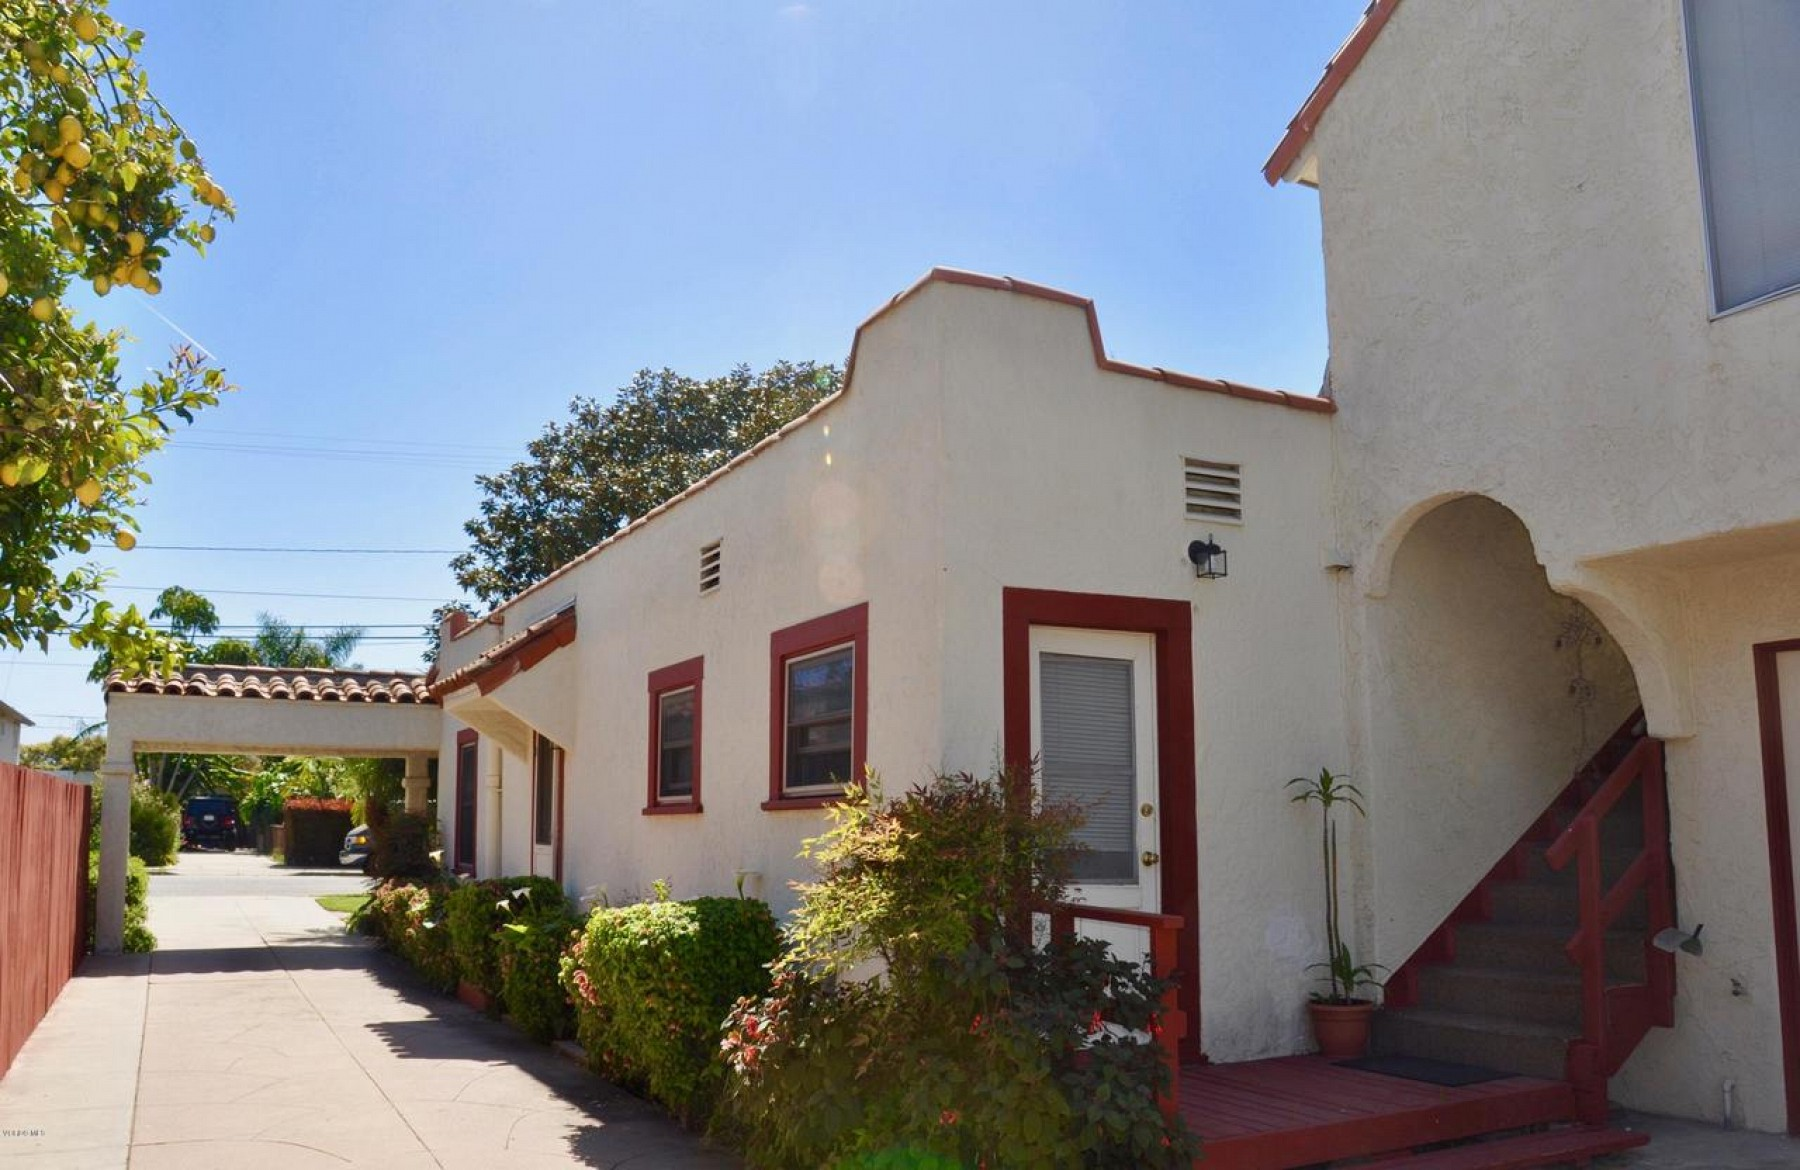 95 South Santa Cruz Street, Ventura, CA 93001